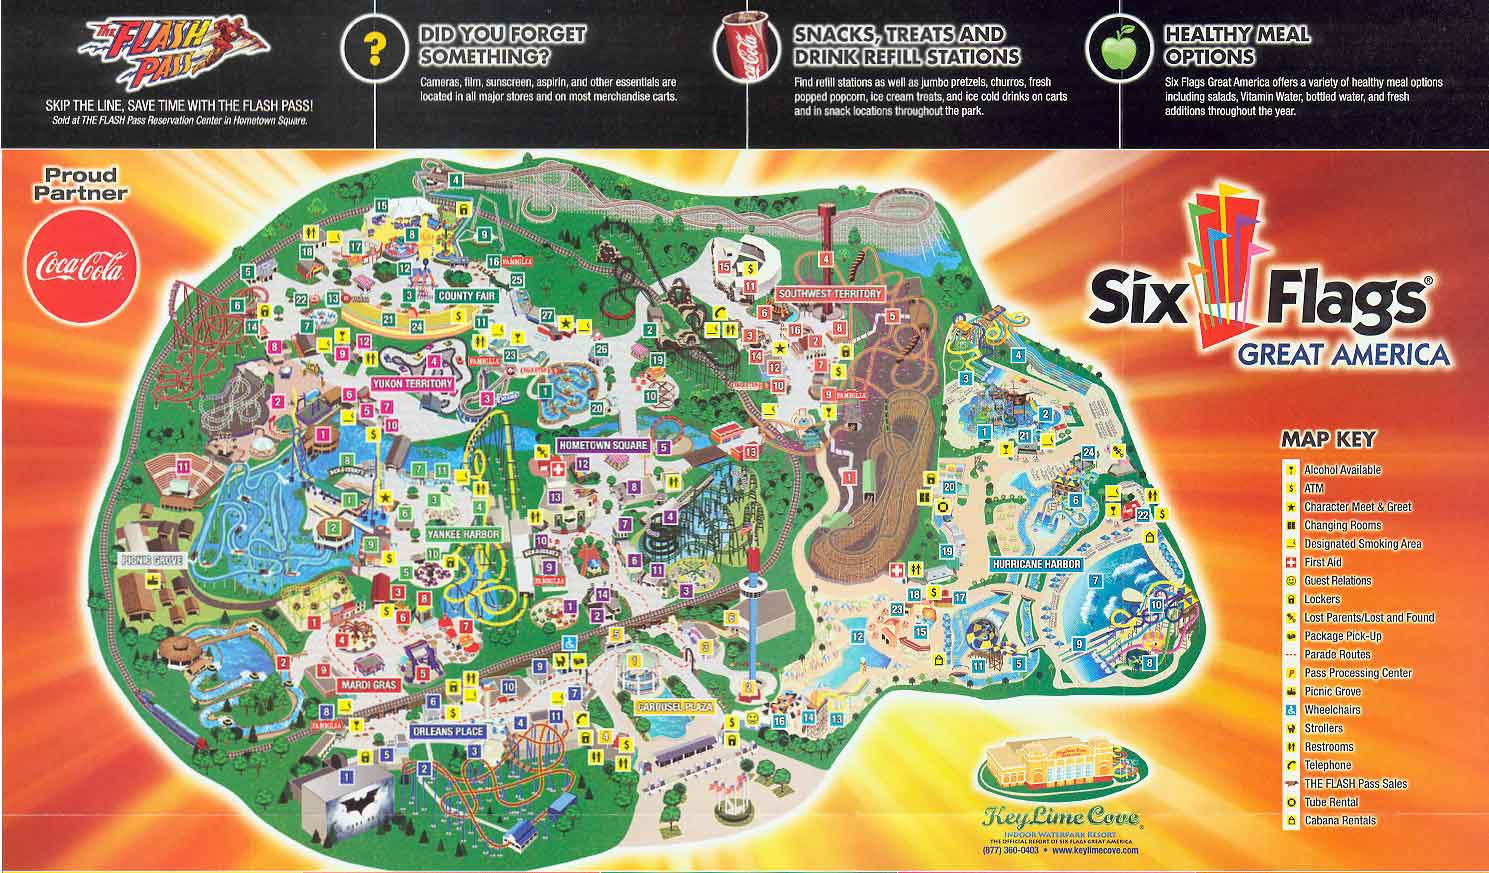 Six Flags Great America 2011 Map